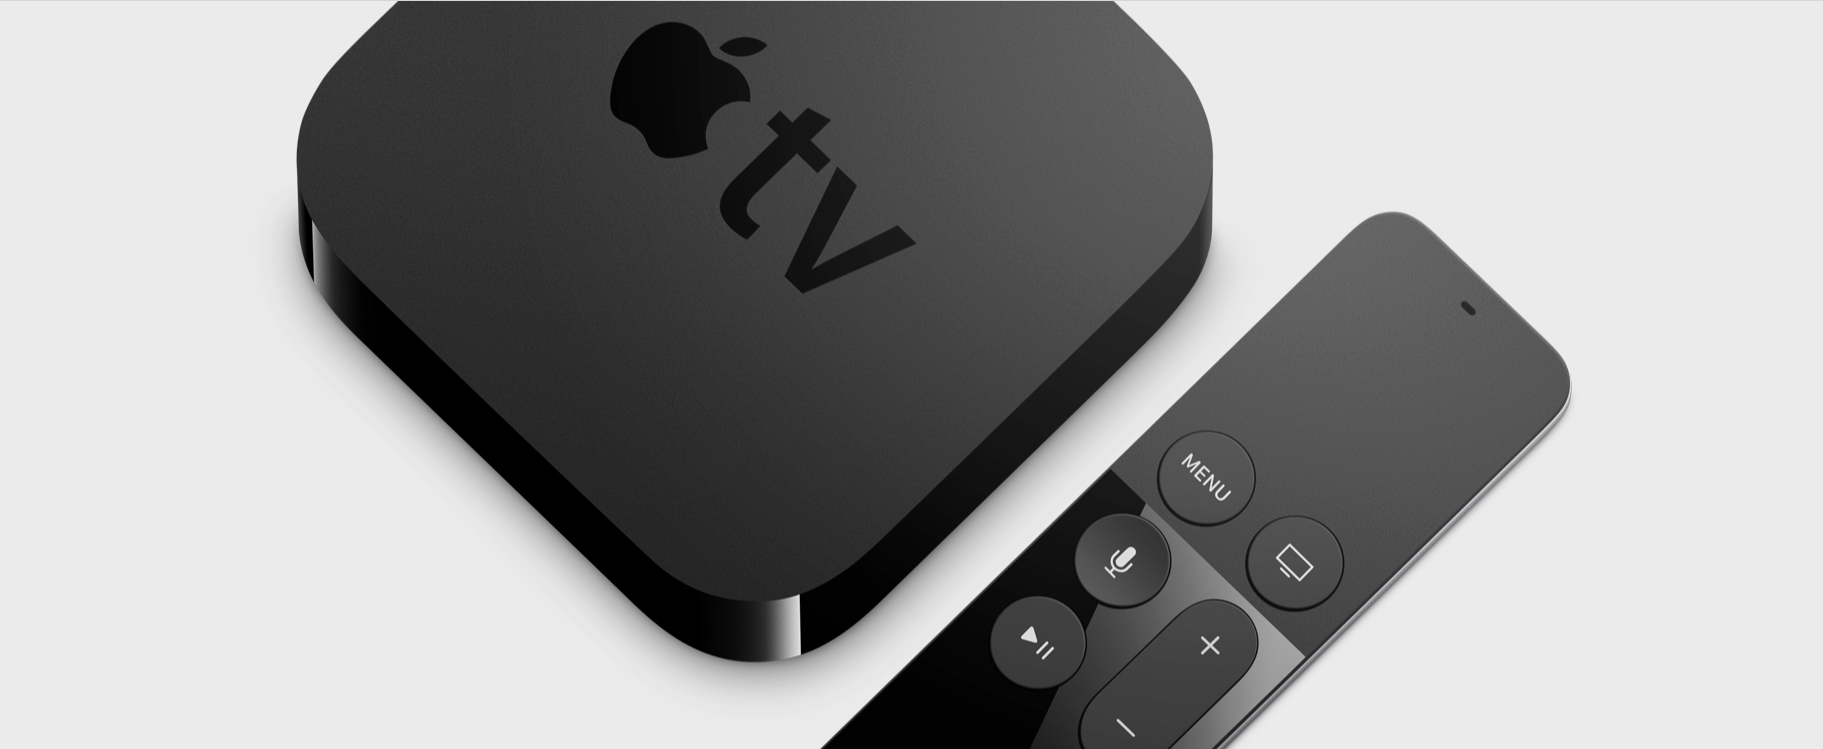 The Remote app now works with the new Apple TV